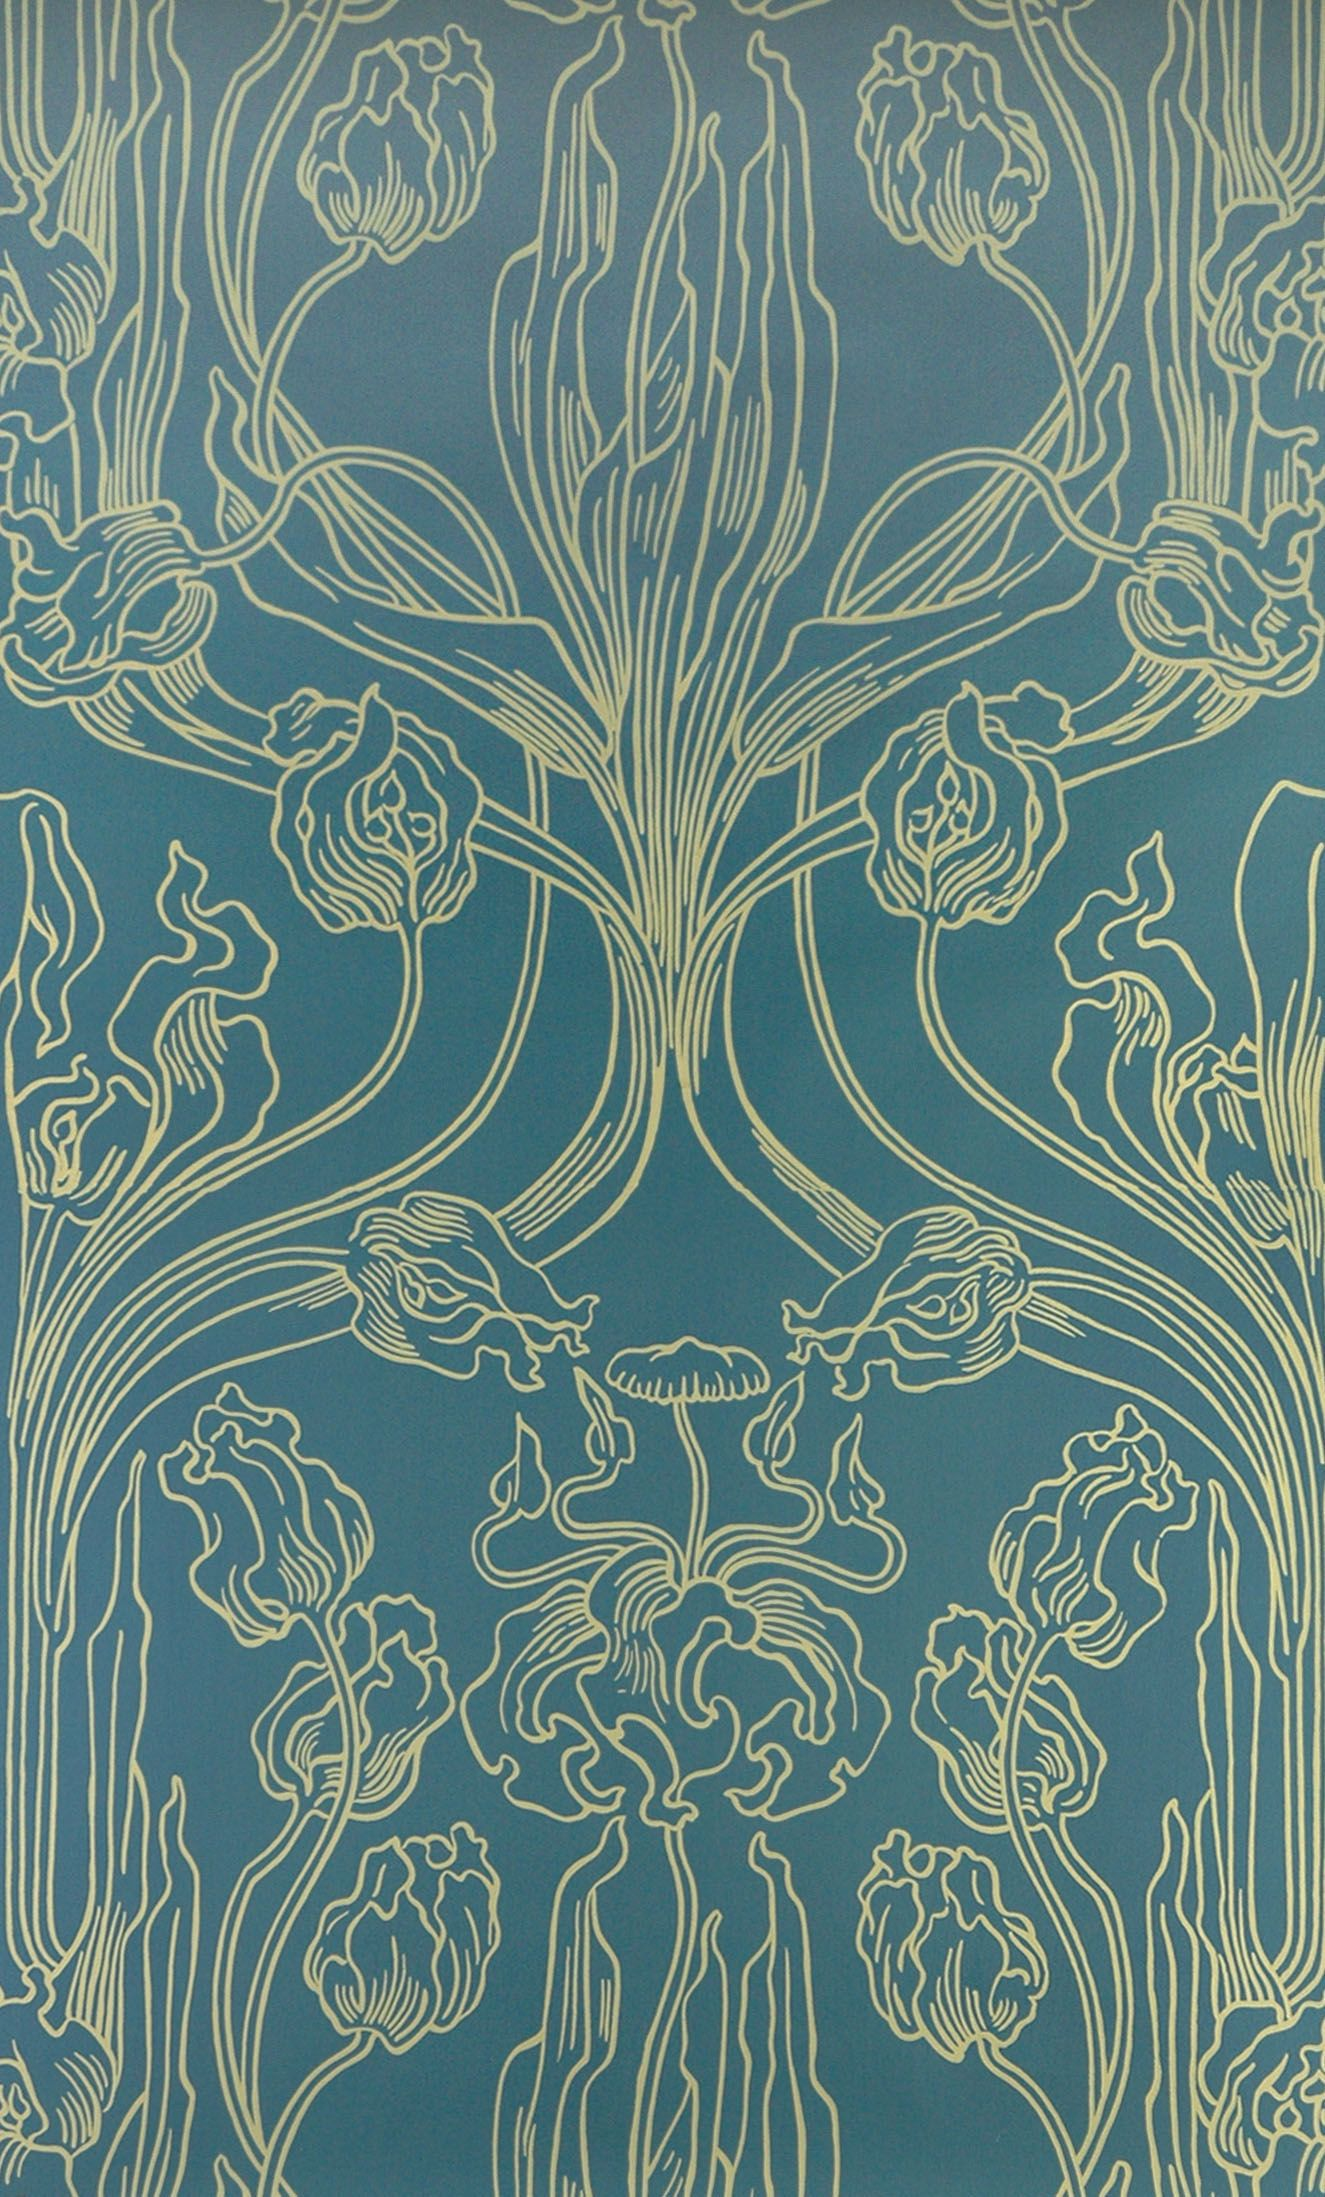 historische tapeten tulip motif in yellow and blue joseph maria olbrich cal 1900 patterns. Black Bedroom Furniture Sets. Home Design Ideas